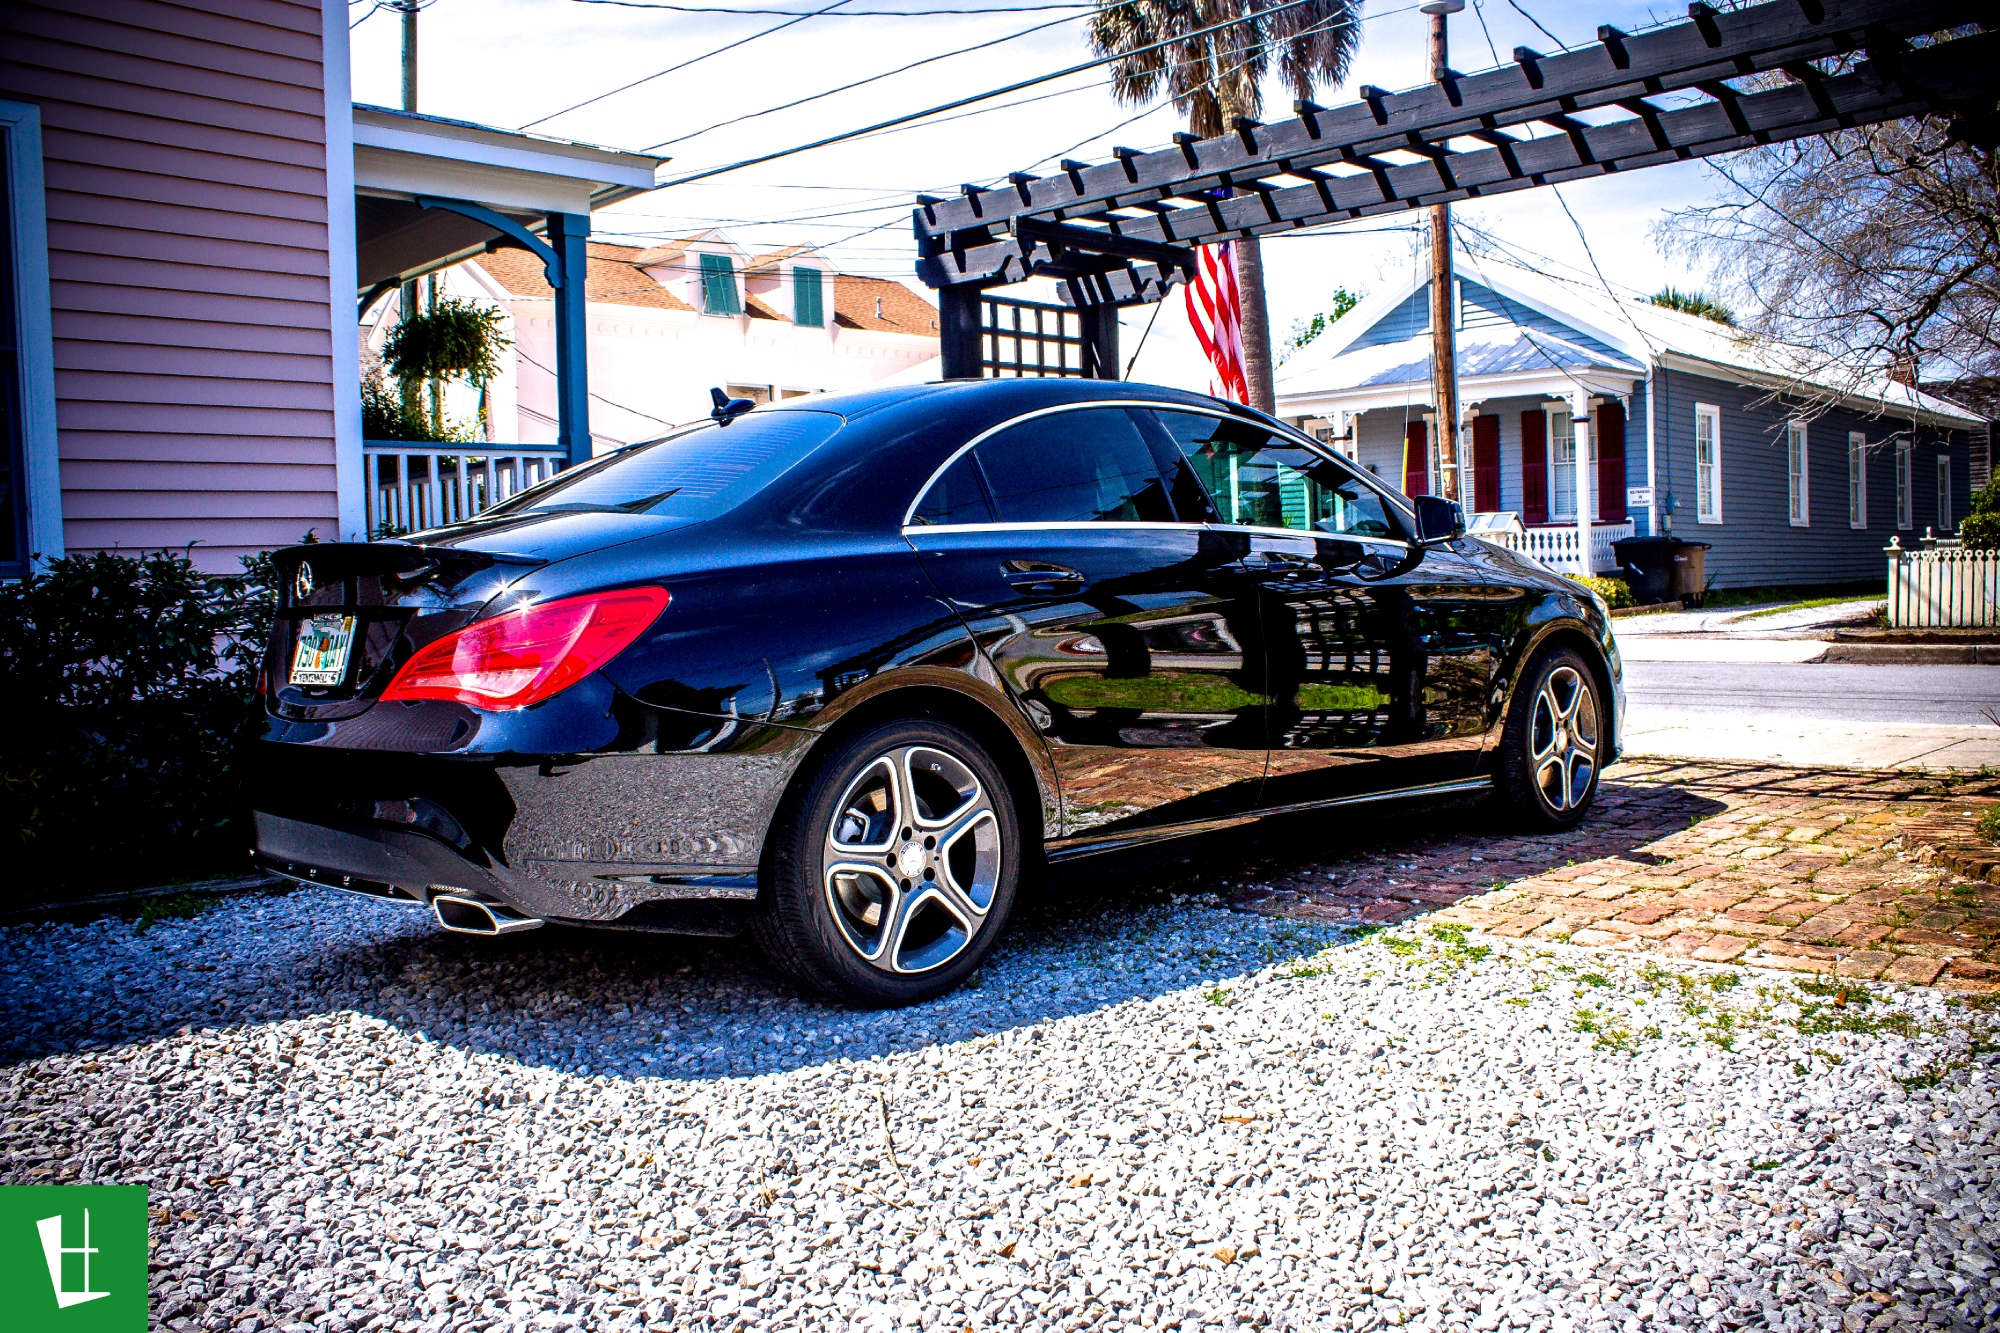 2014 mercedes benz cla 250 window tinting for Mercedes benz window tint